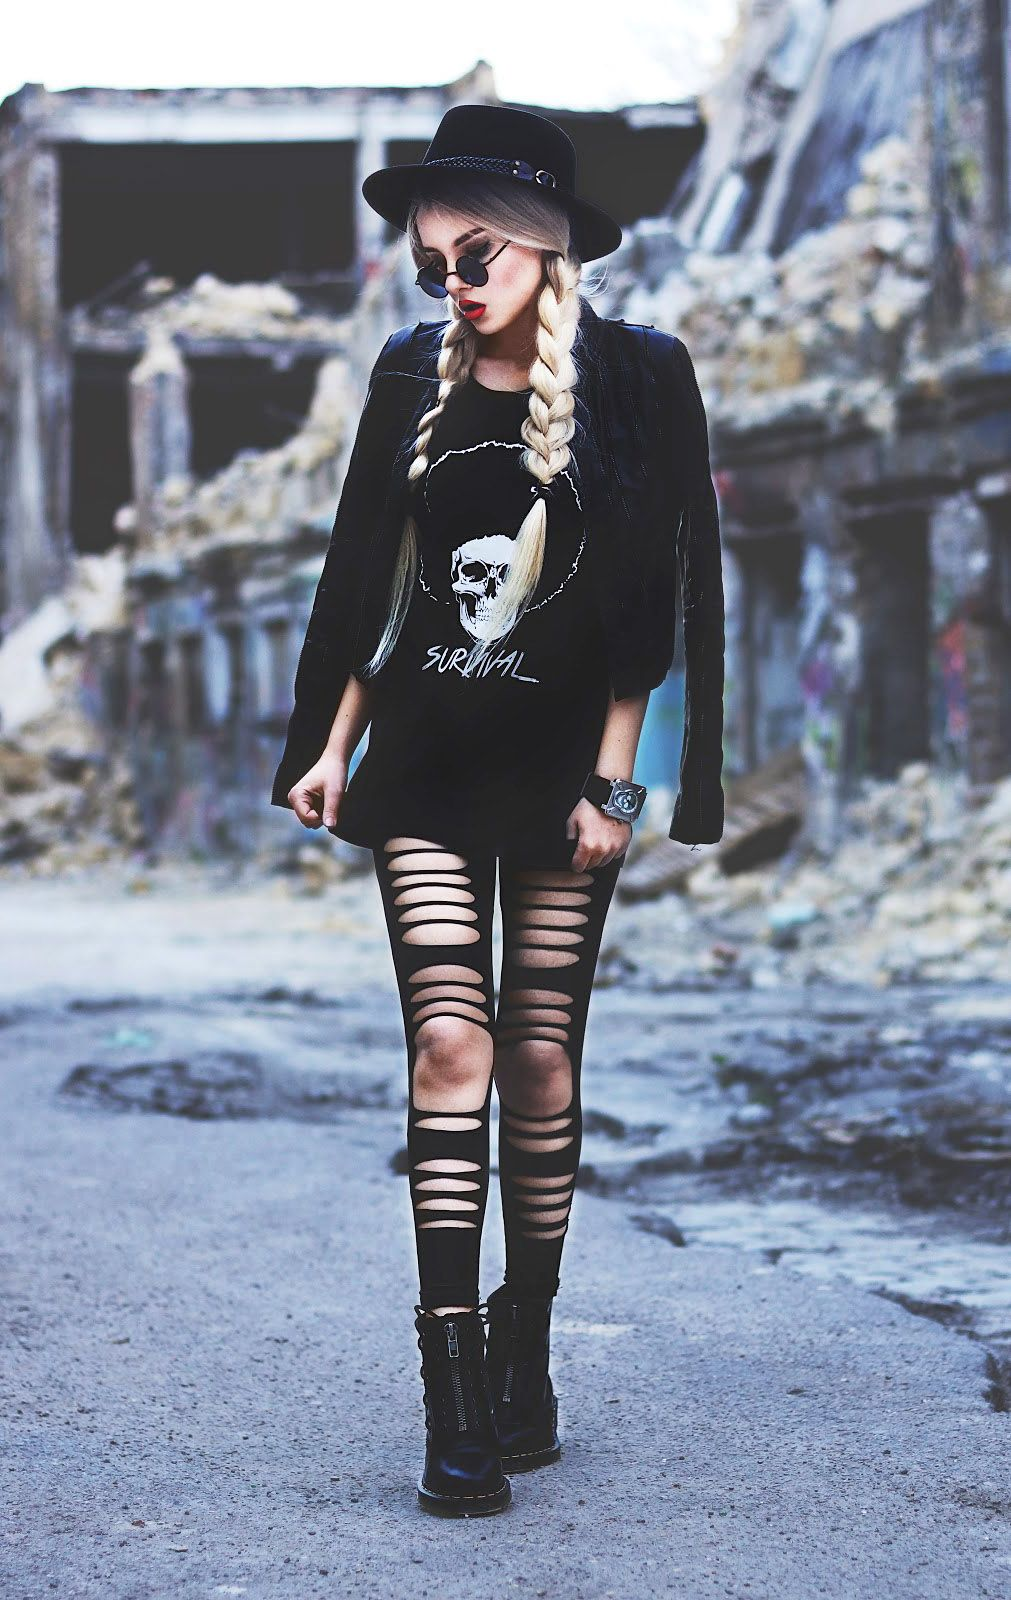 Black t shirt grunge - 29 Fall Grunge Outfit Ideas To Wear Now